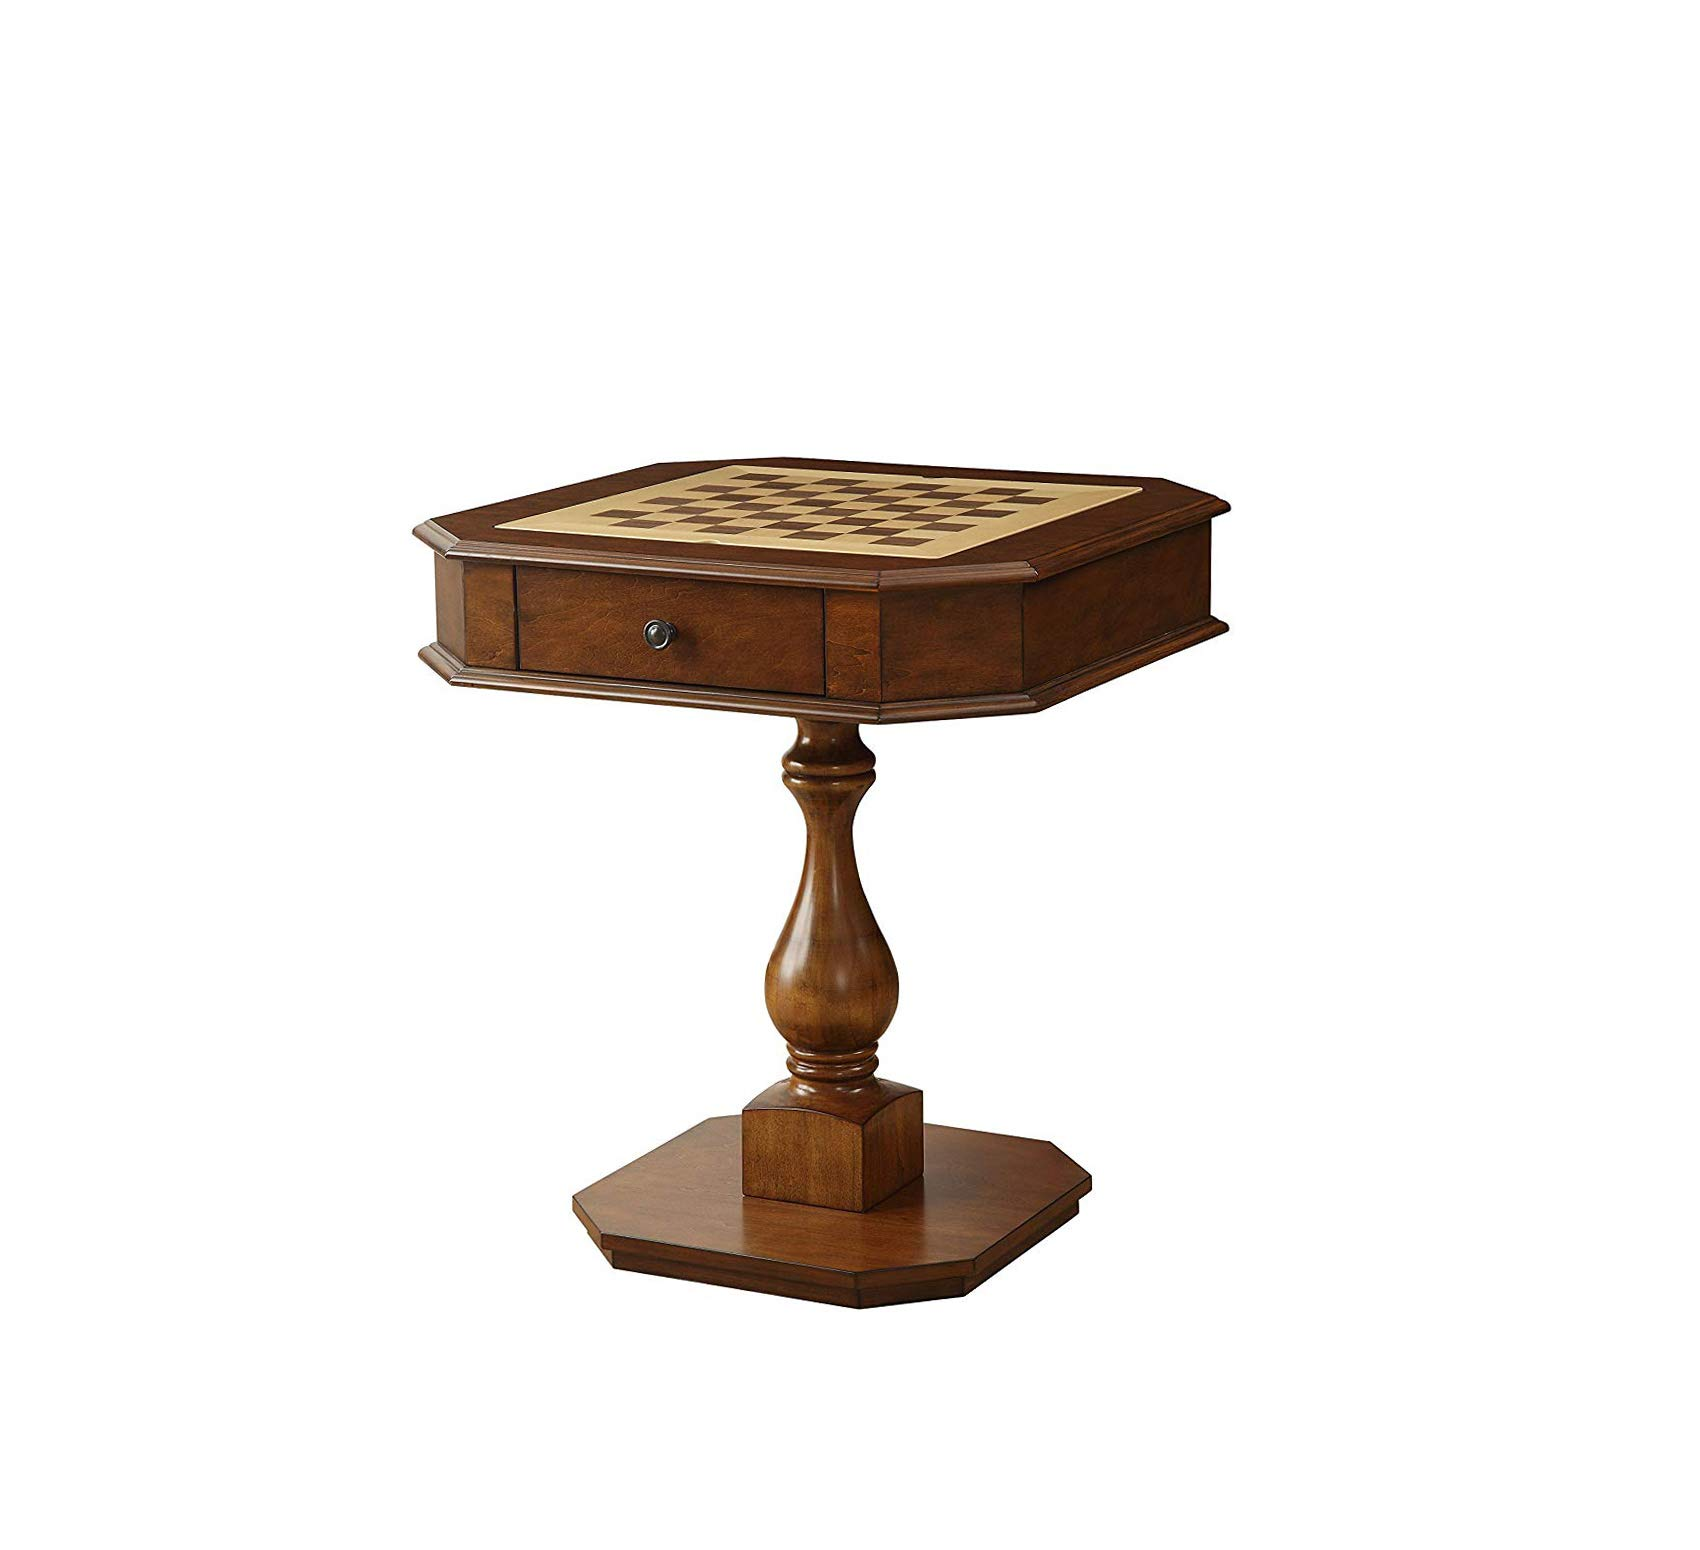 Wood & Style Home Bishop Game Table, Cherry, One Size Office Décor Studio Living Heavy Duty Commercial Bar Café Restaurant by Wood & Style